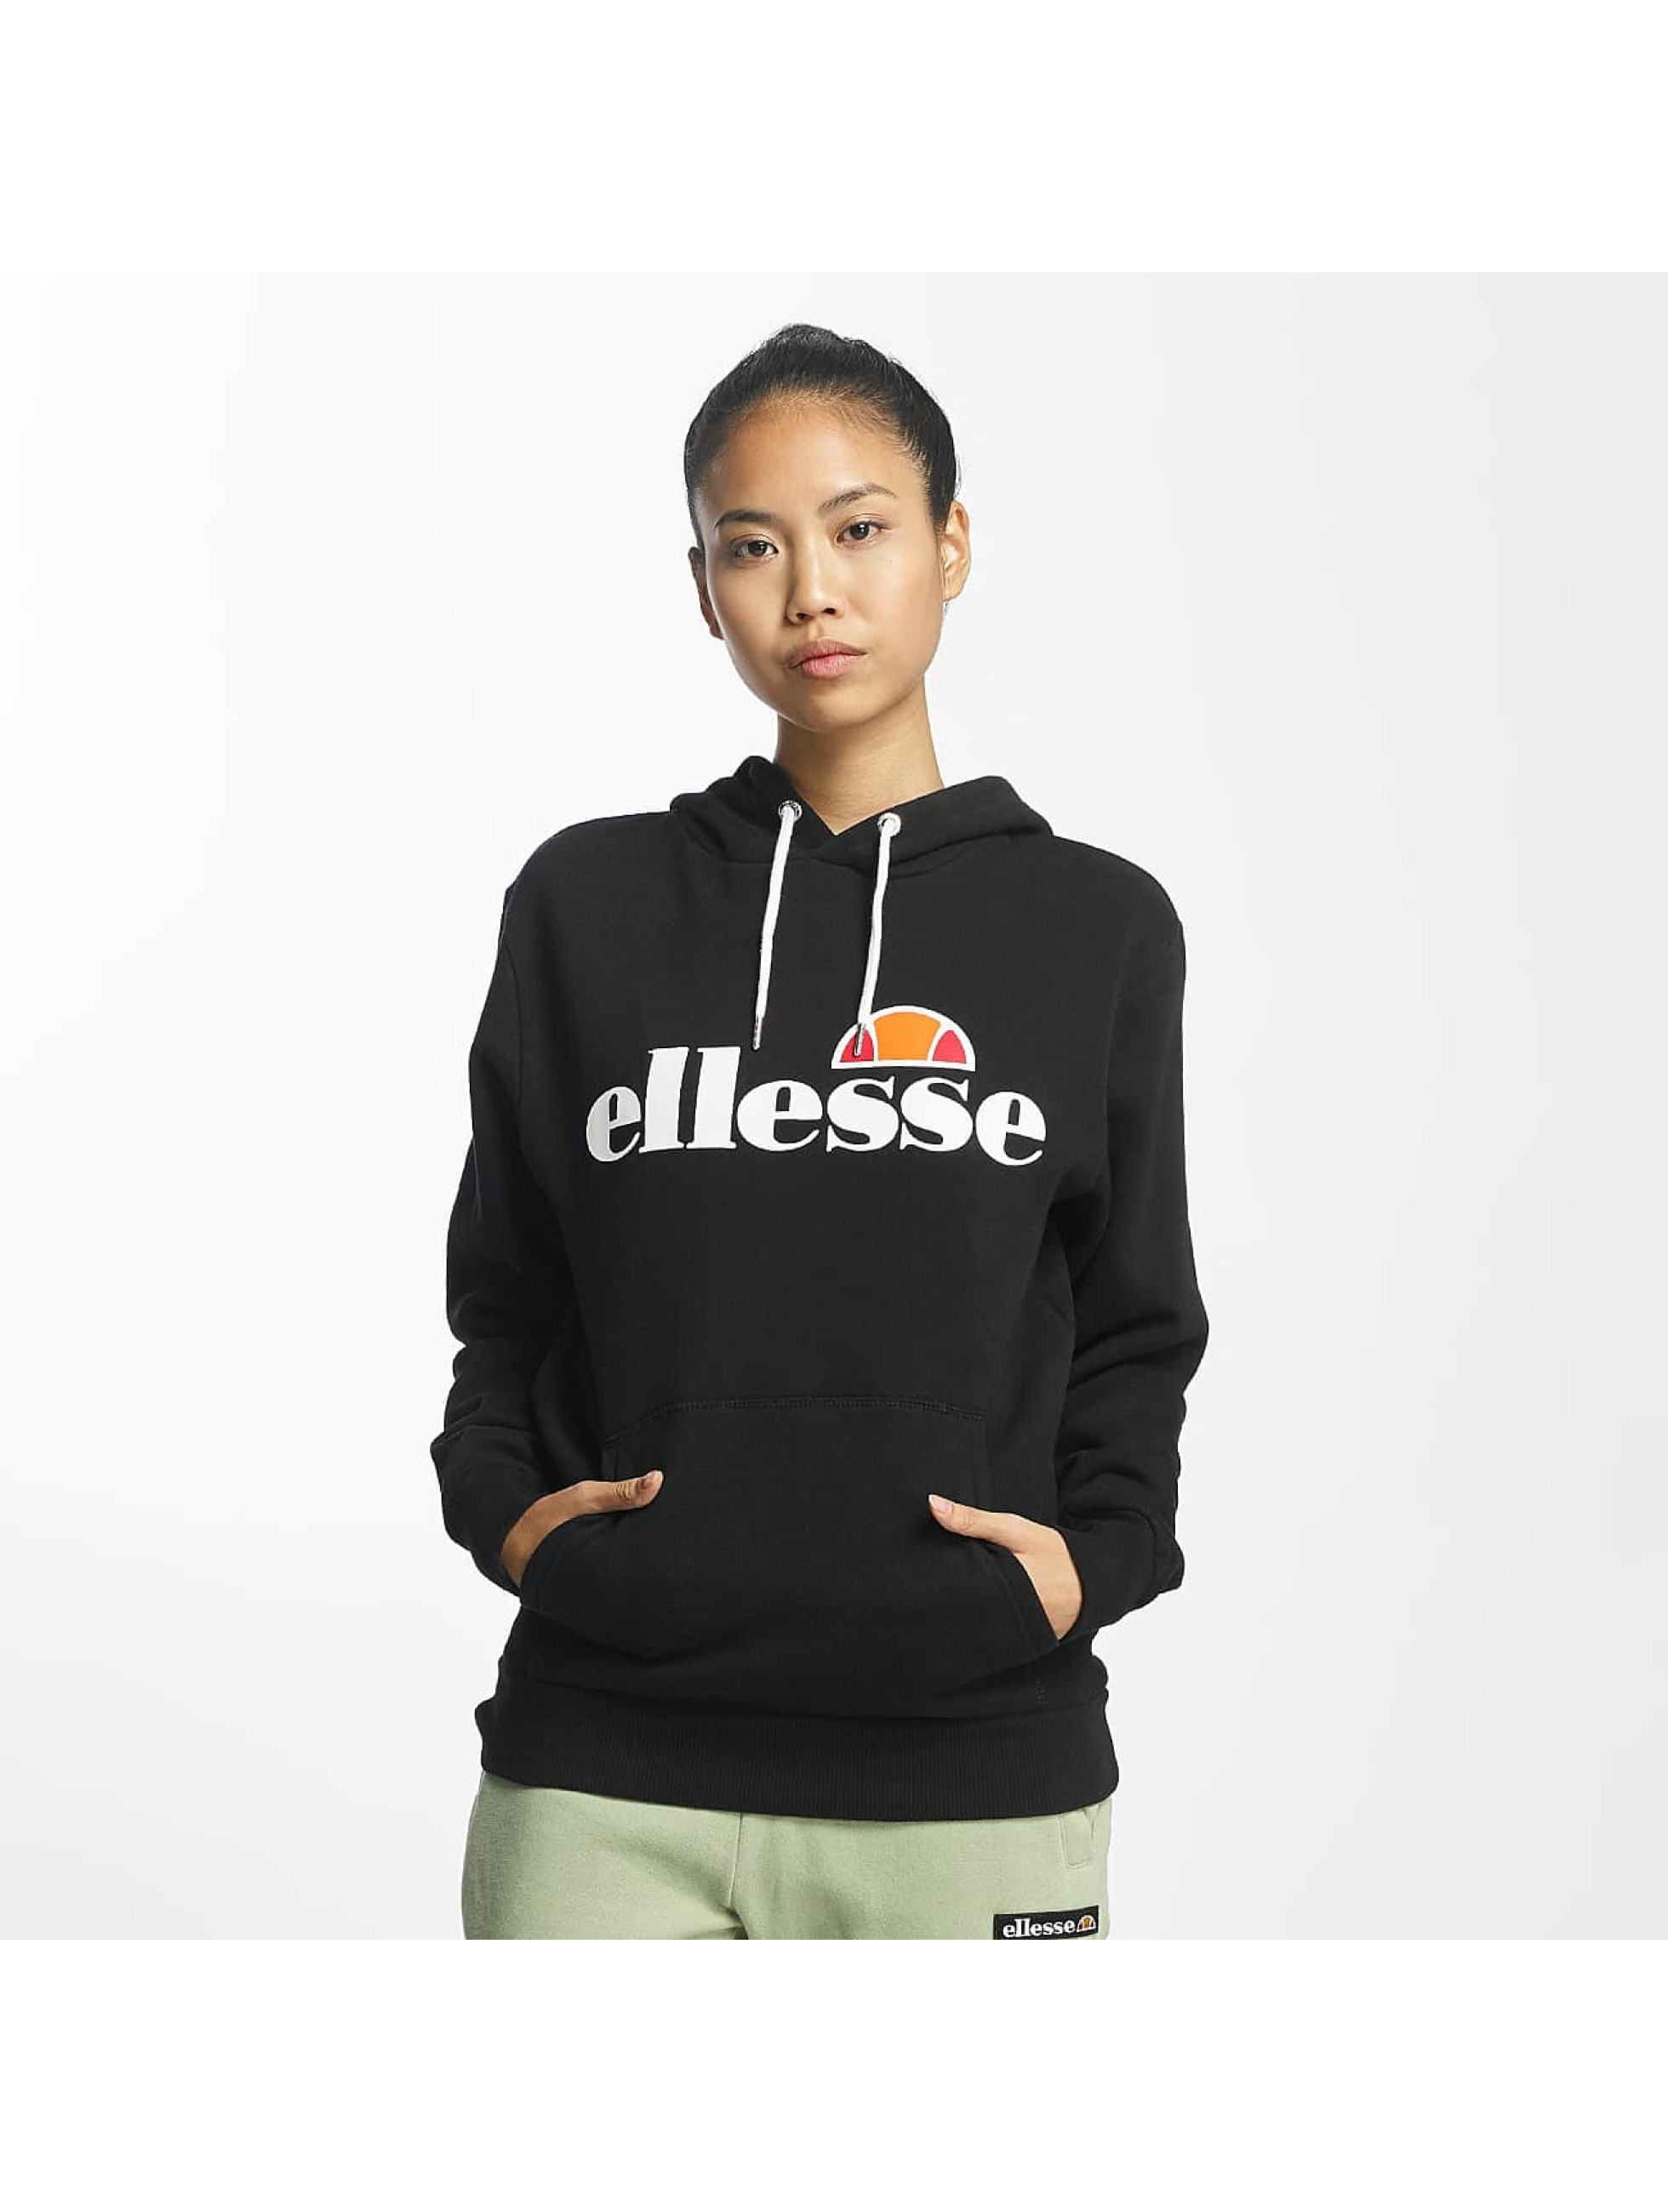 ellesse torices gris femme sweat capuche ellesse acheter pas cher haut 417799. Black Bedroom Furniture Sets. Home Design Ideas